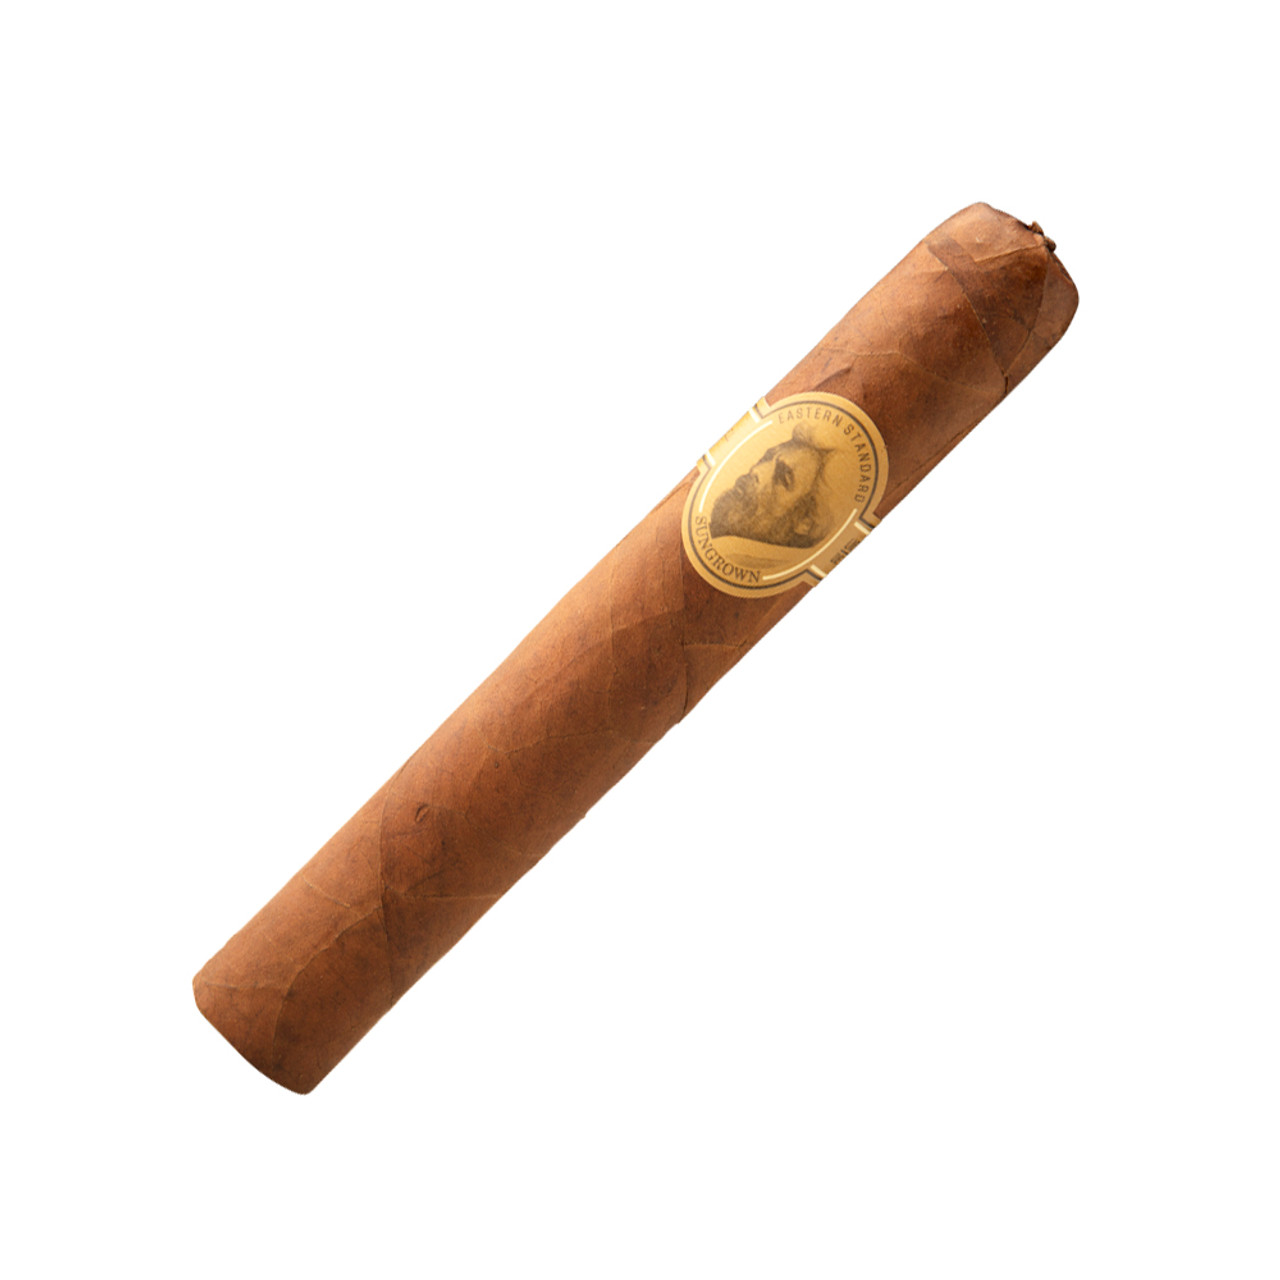 Caldwell Eastern Standard Sungrown Magnum Cigars - 6 x 60 (Box of 20)